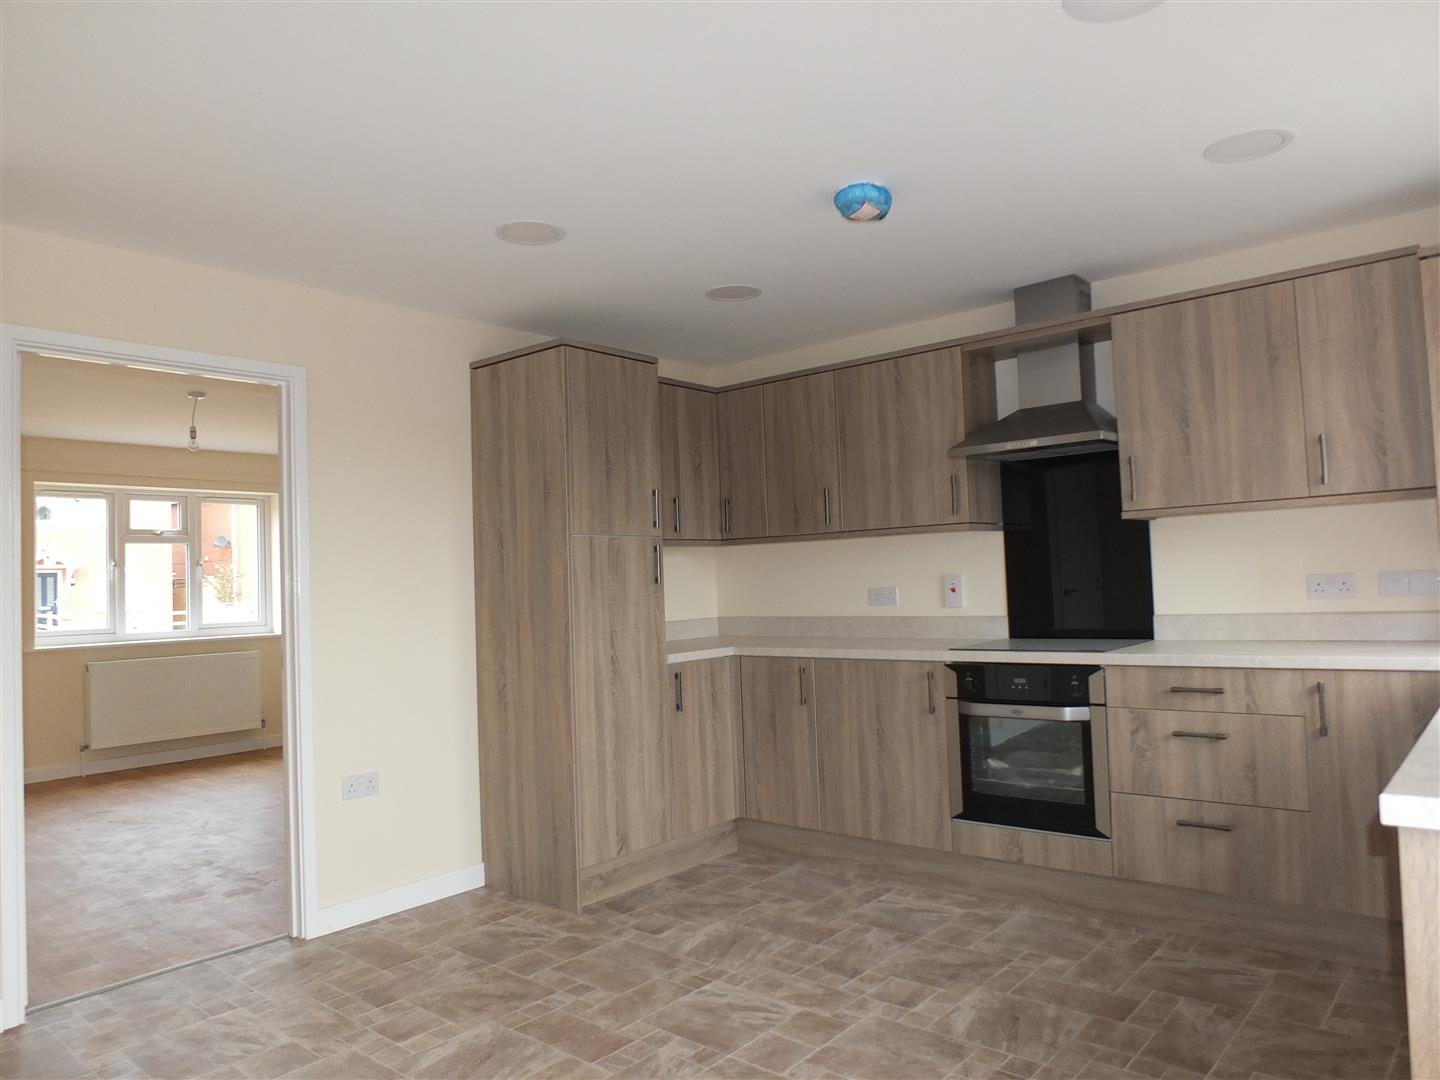 3 bed house to rent in Long Sutton, PE12 9LE 6